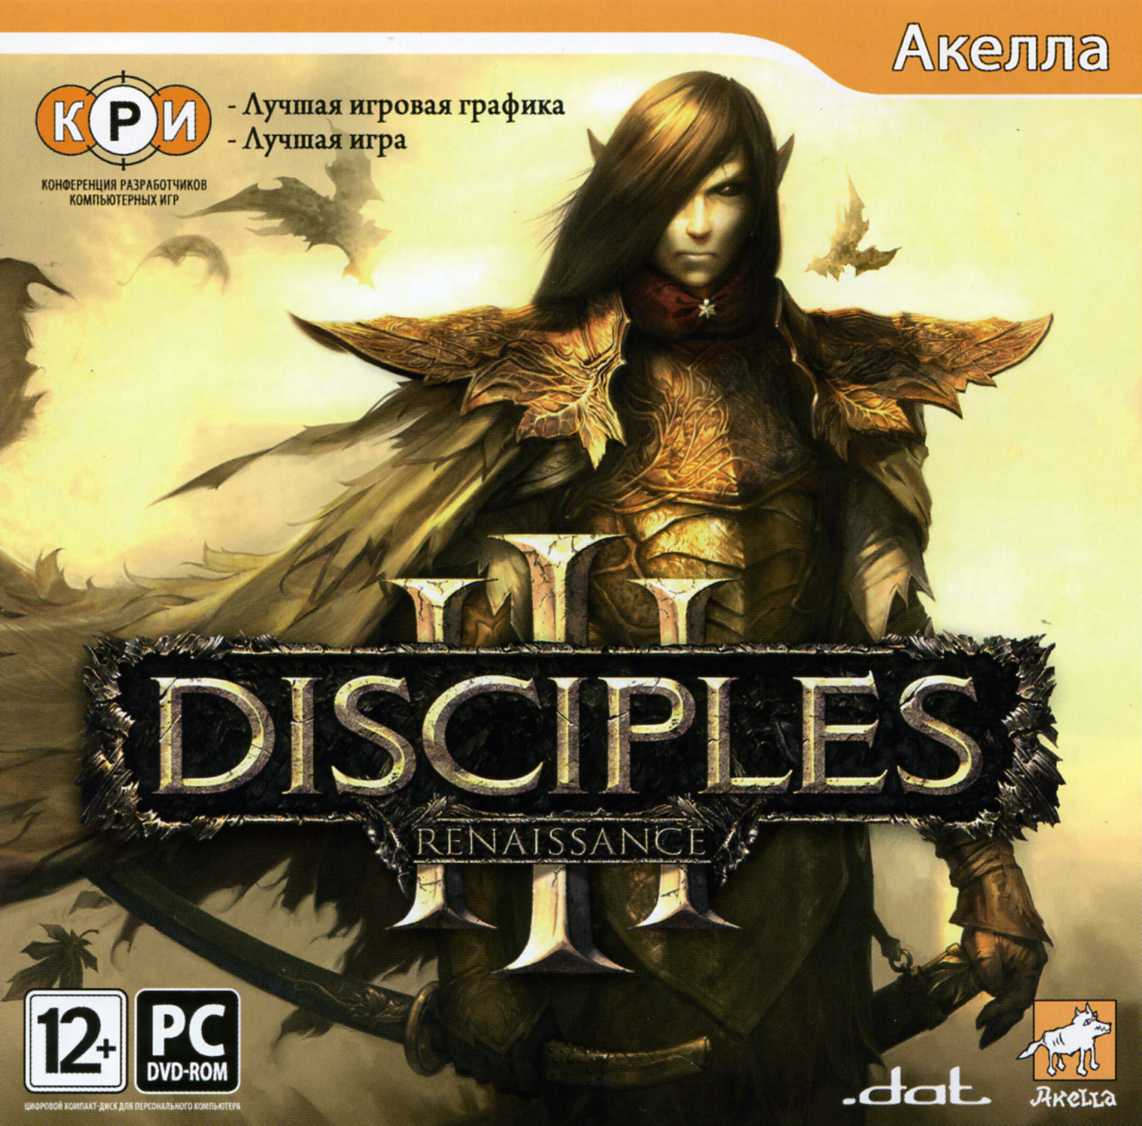 Disciples 3: Renaissance (Key from Akella)